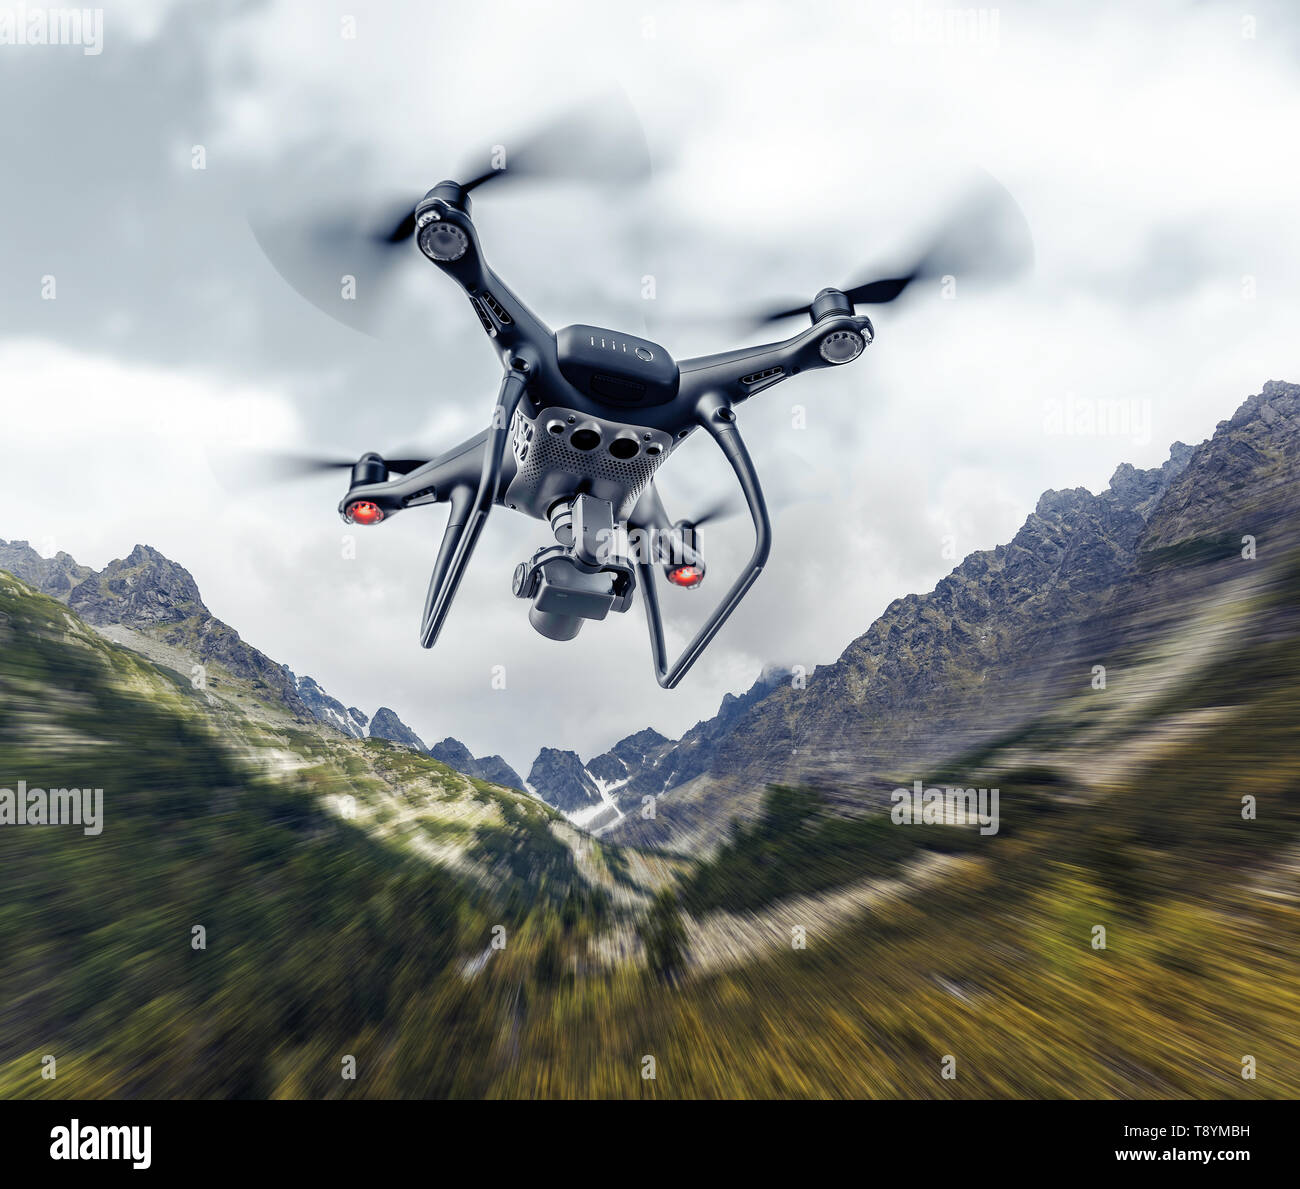 Drone flies in the mountains. - Stock Image